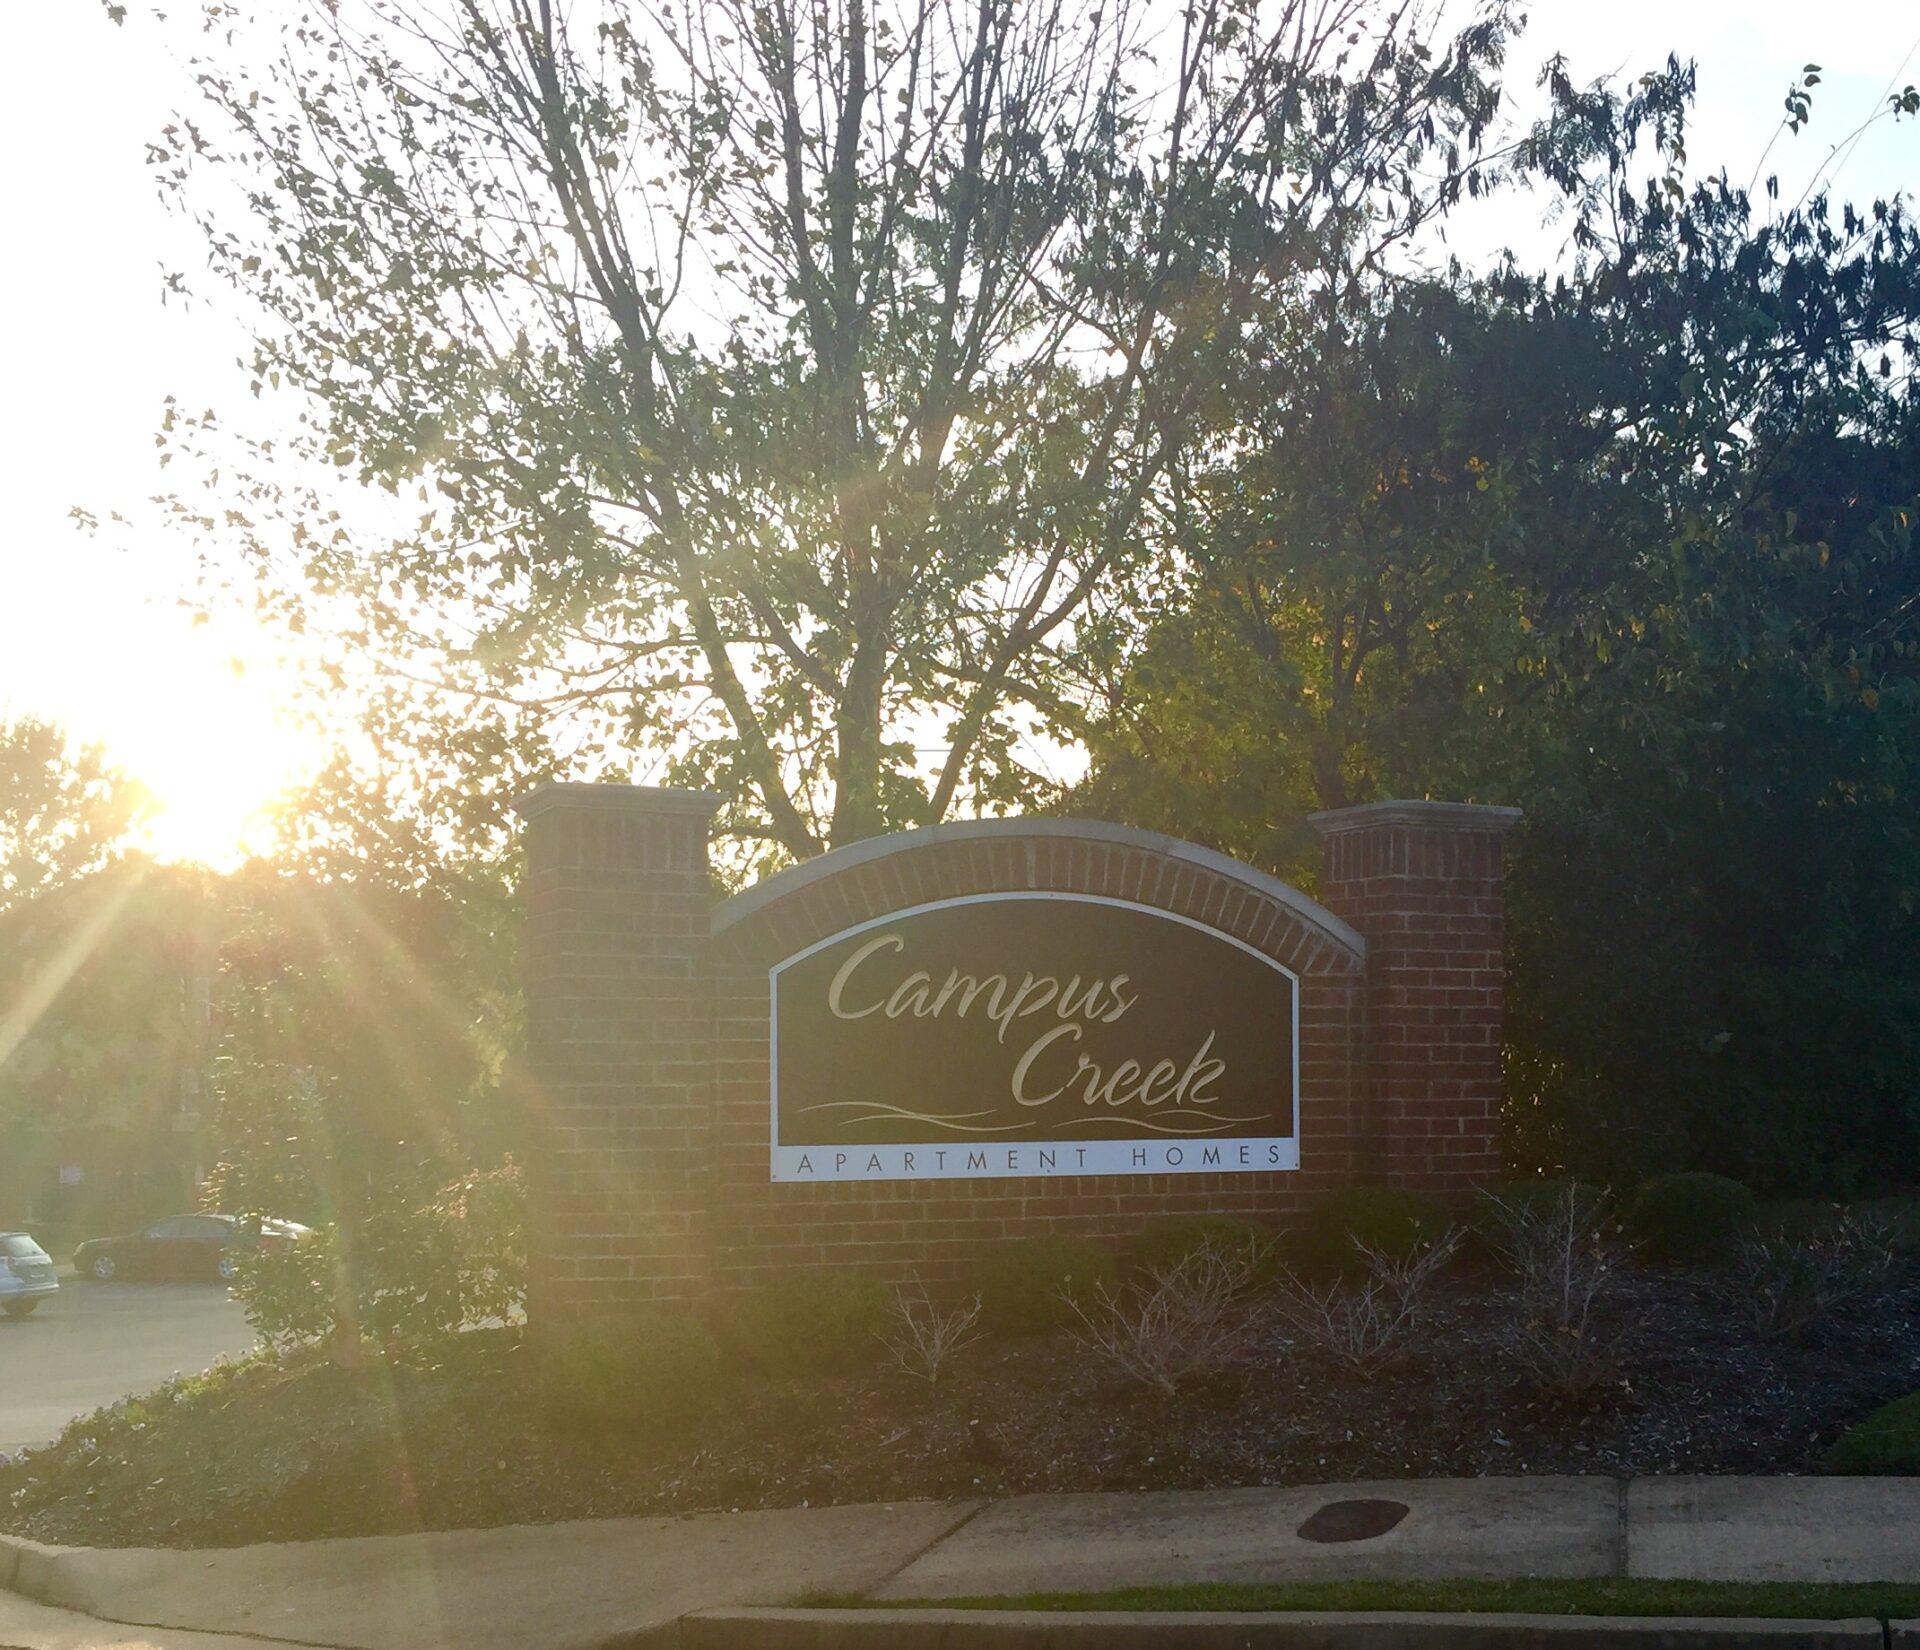 Campus Creek Apartments An Ole Miss Classic HottyToddy